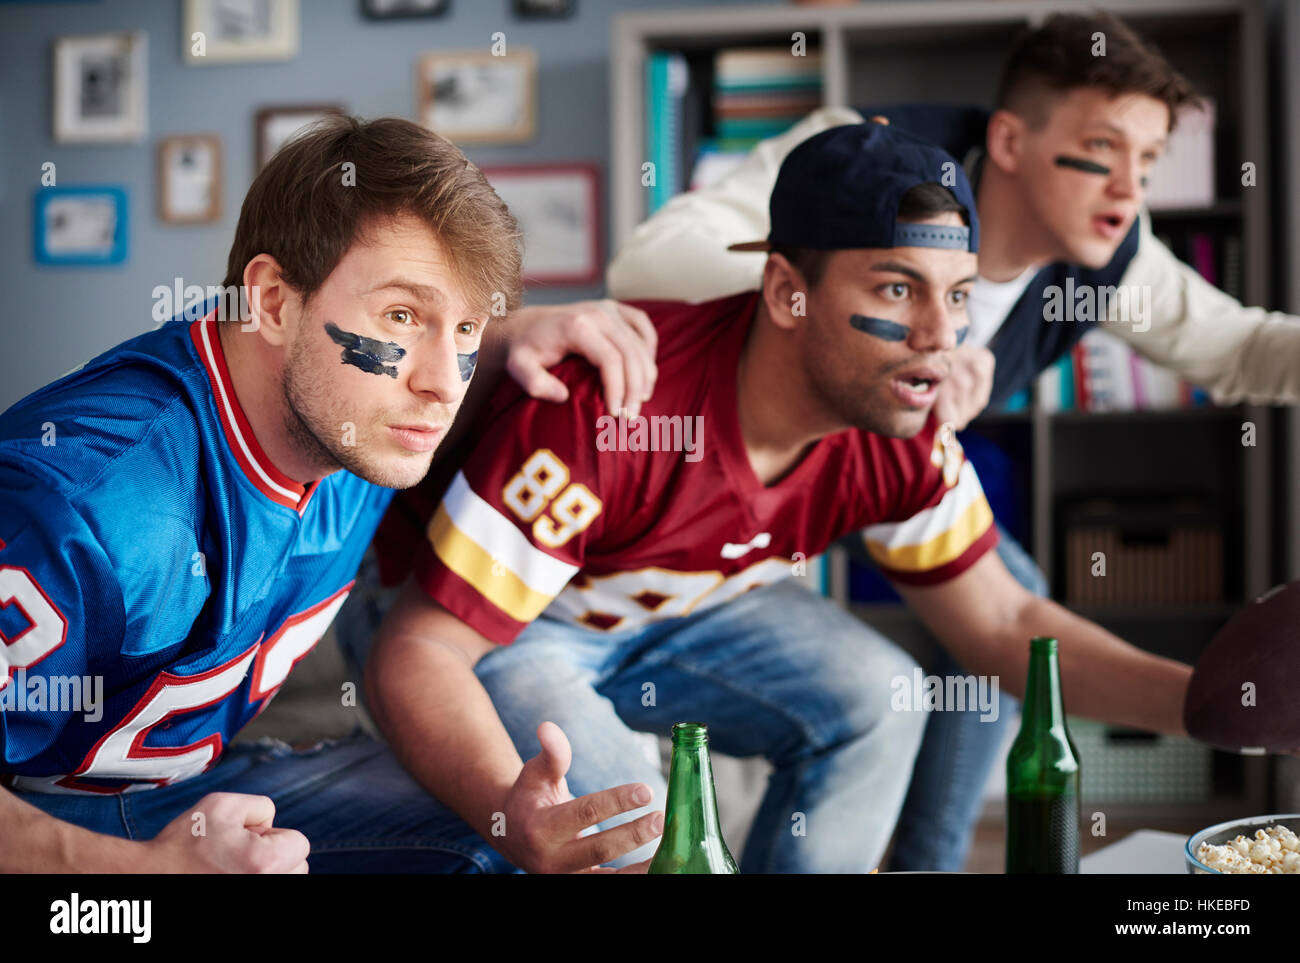 front view of excited men watching sports game stock photo front view of excited men watching sports game